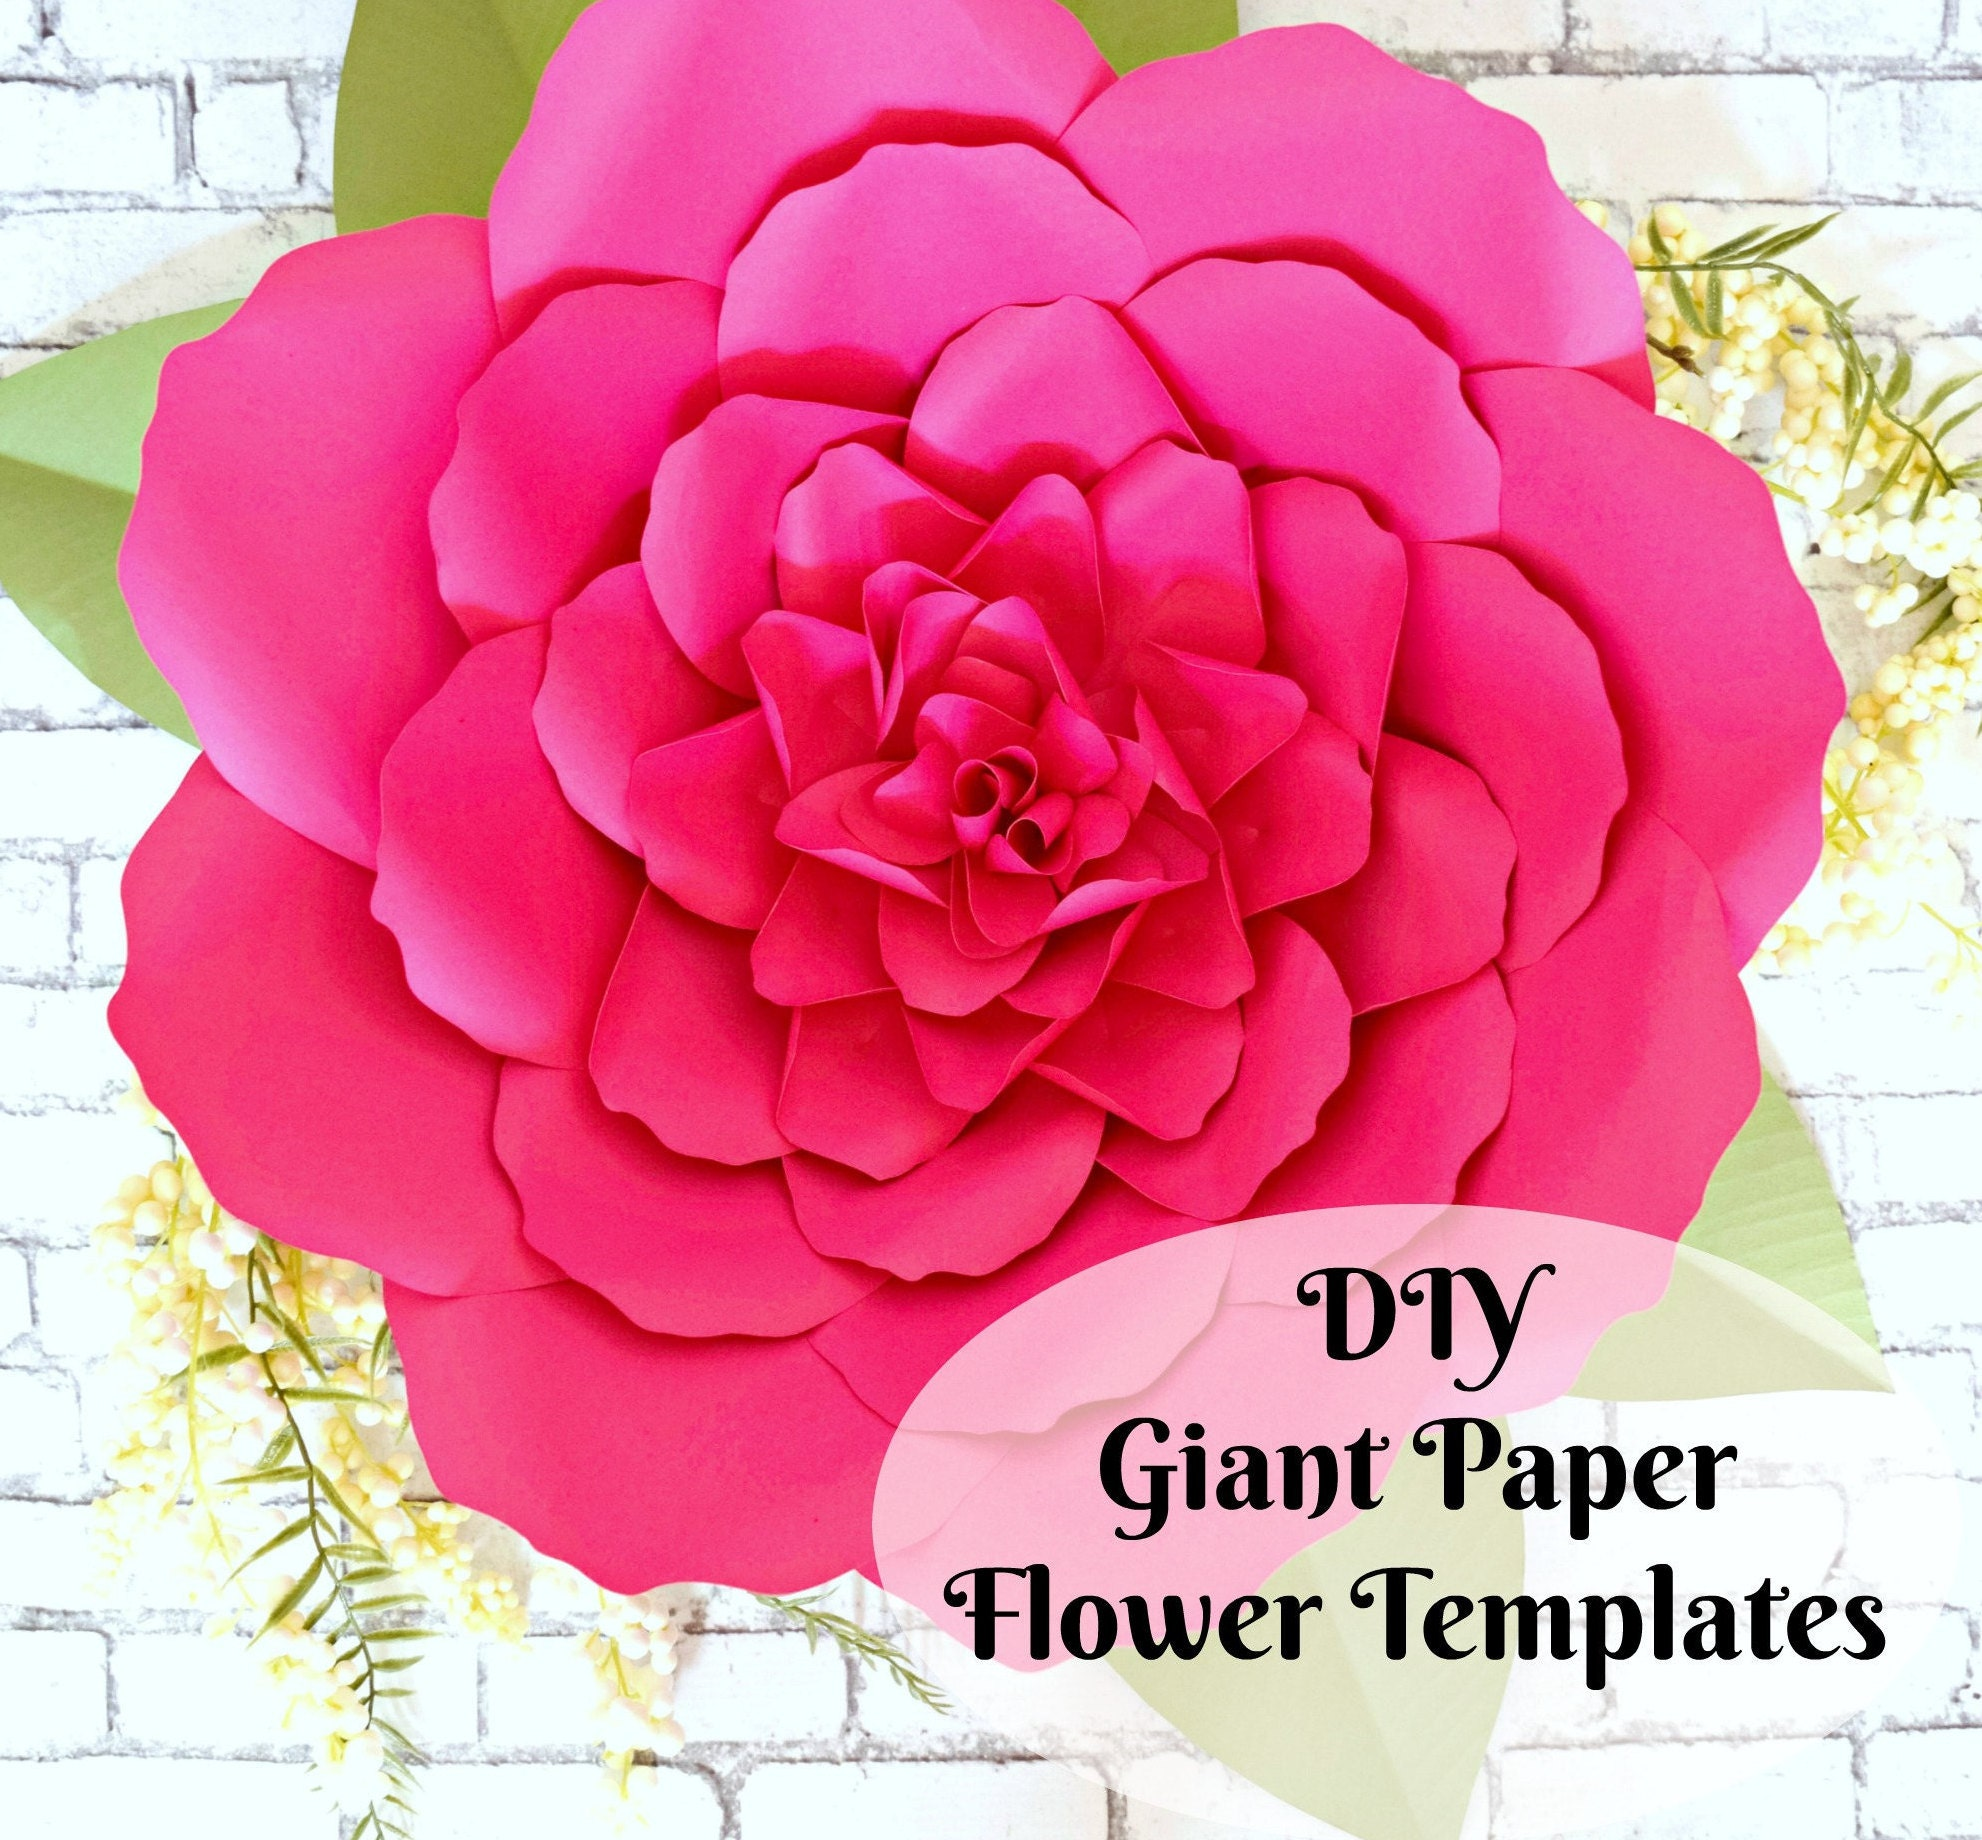 Large Paper Flowers Giant Paper Flower Patterns Tutorials Flower